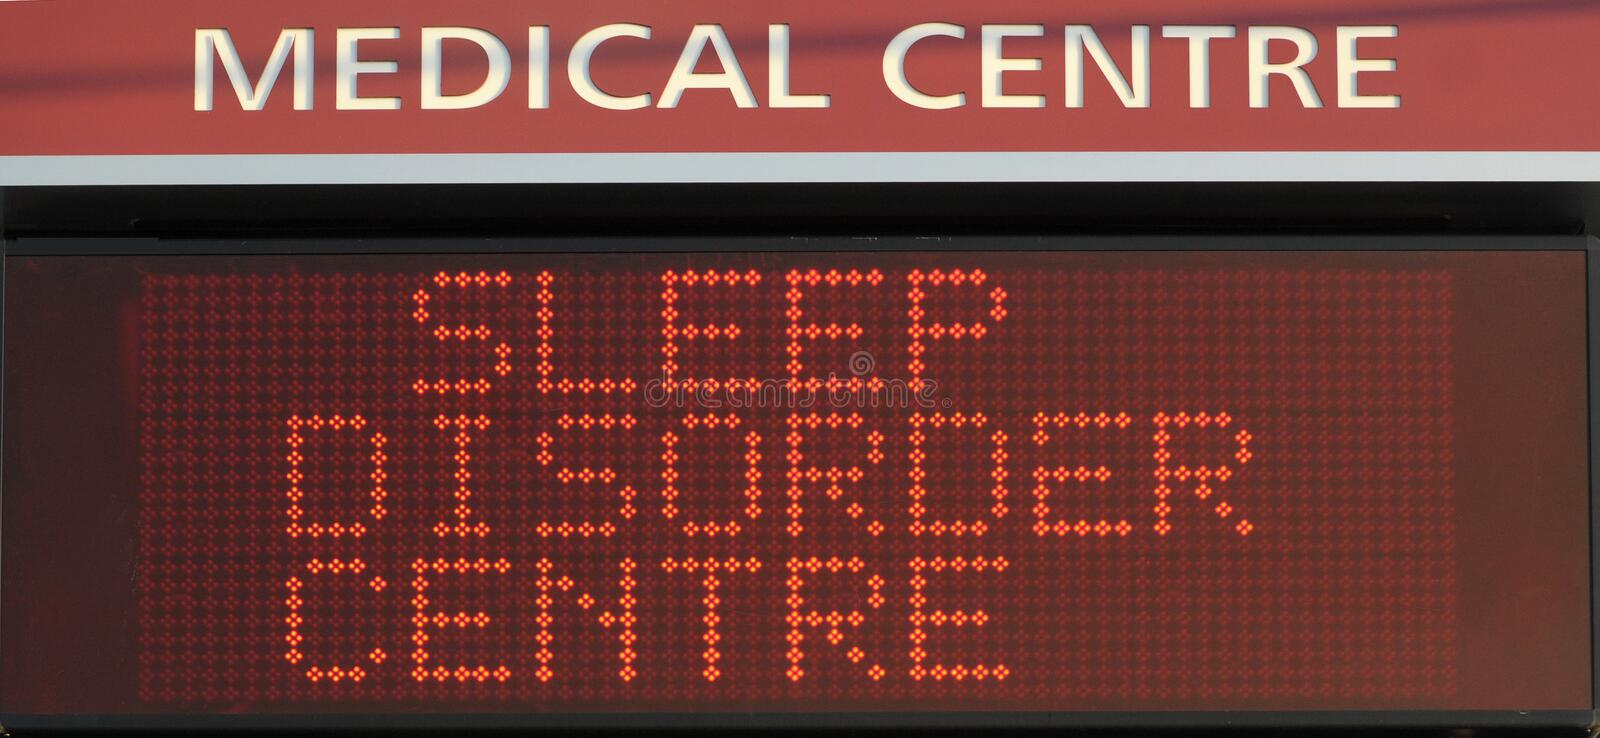 Download Sleep Disorder Centre stock image. Image of illness, sign - 6169617